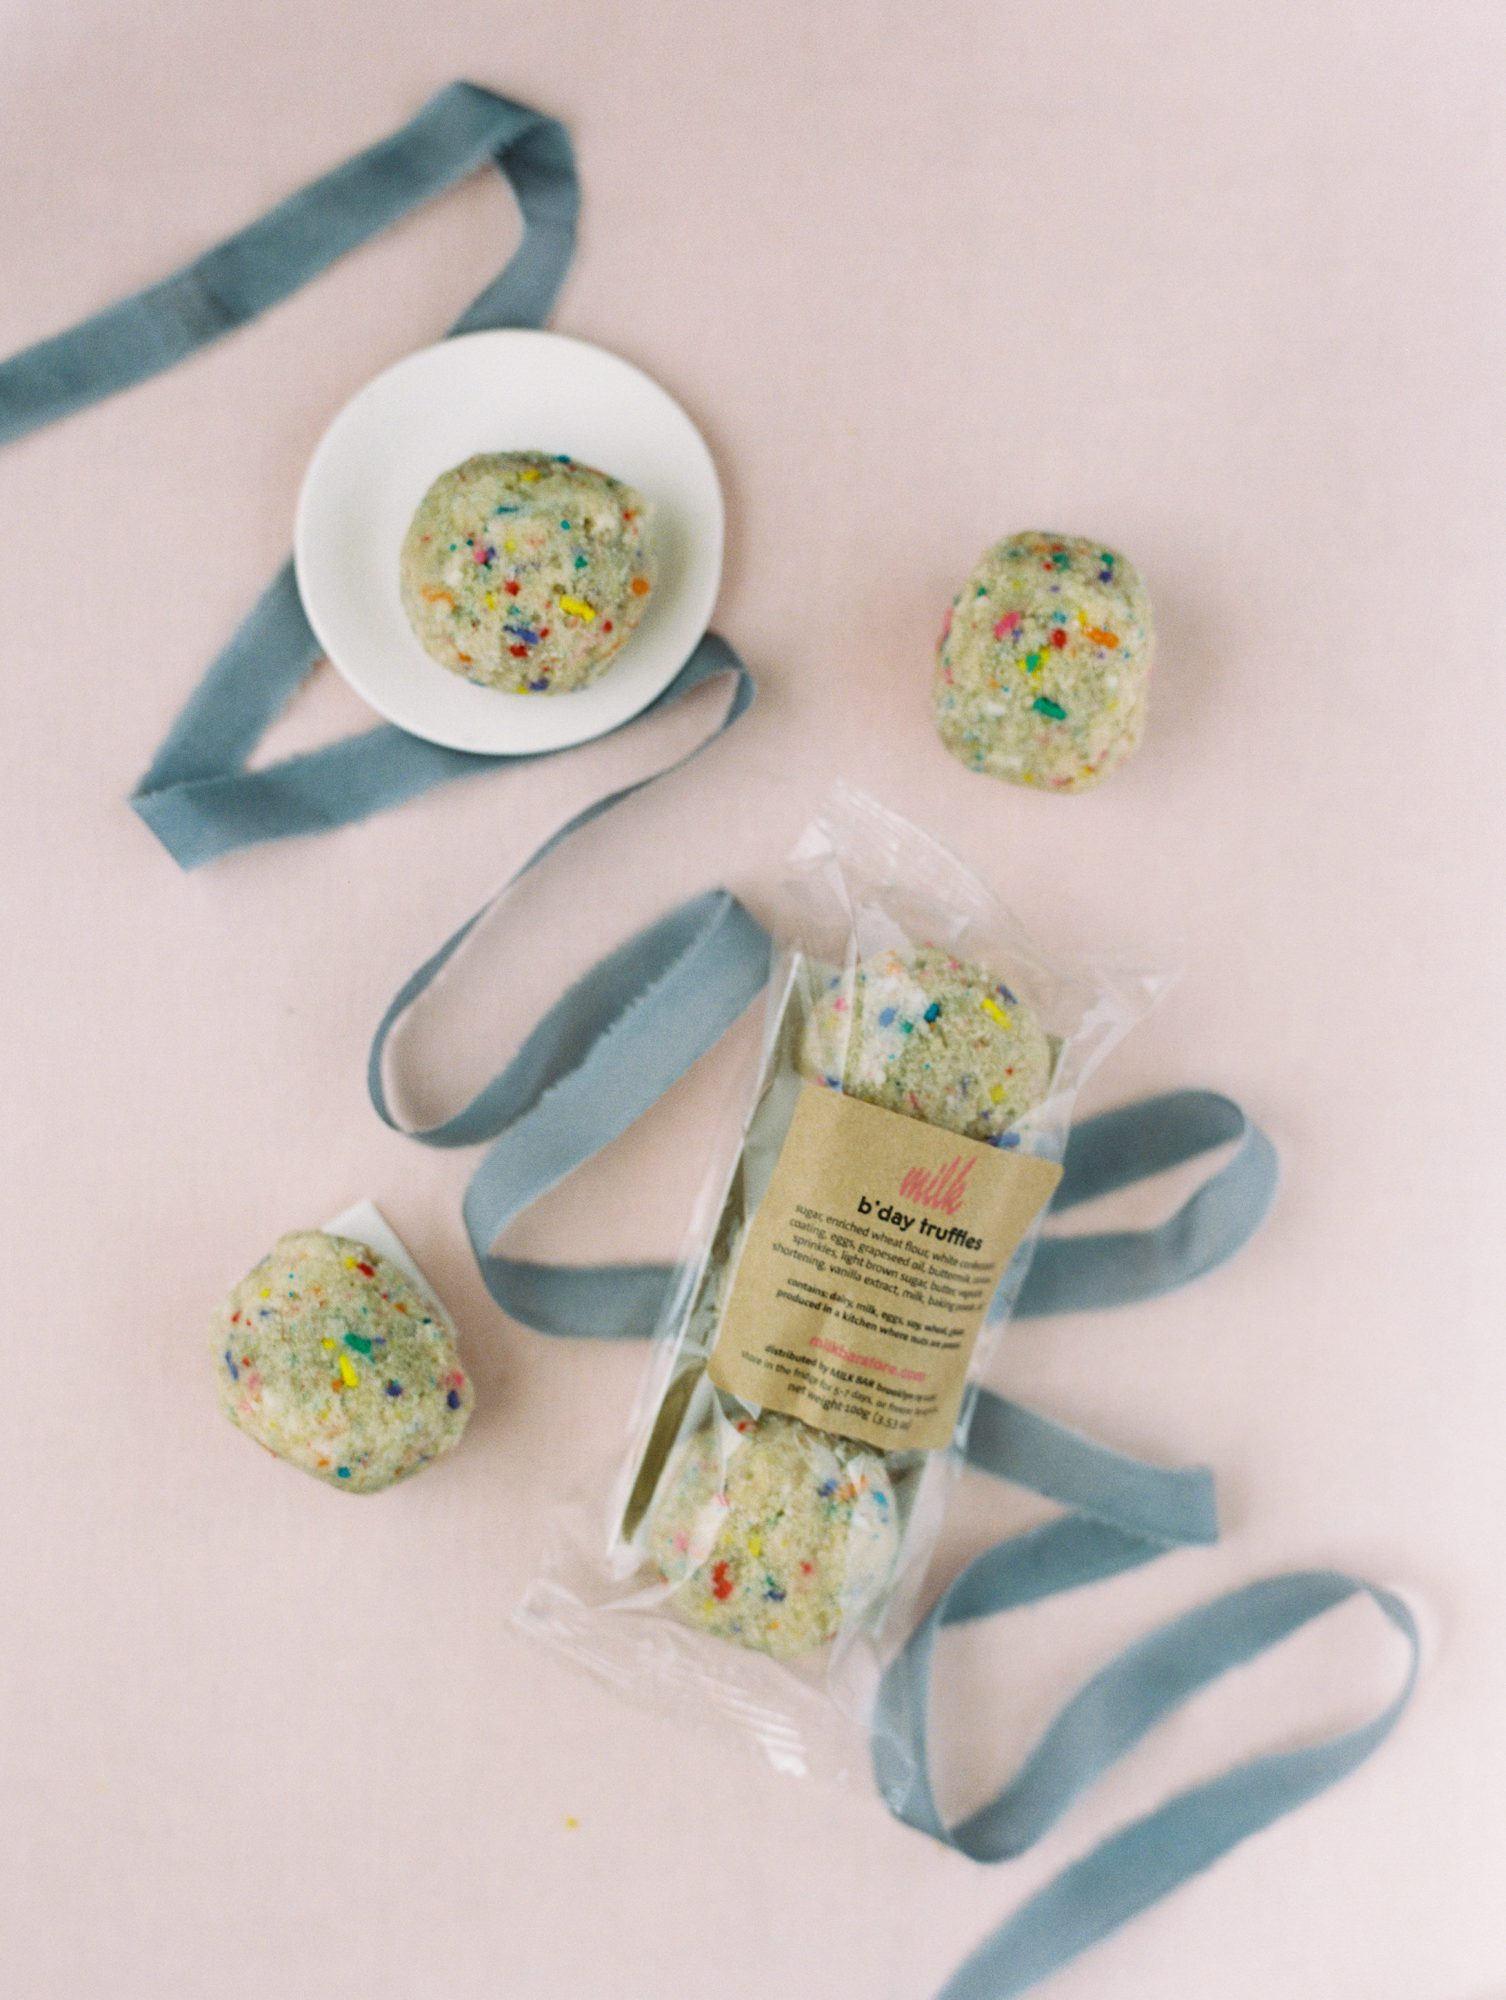 Play up your pastel color scheme with a unique take on truffles: Go the funfetti route. These multicolored truffles by Milk Bar were on full display in their clear packaging—all that was left to do was add a bow. We love how the choice of blue ribbon matched the sprinkles in the treats.